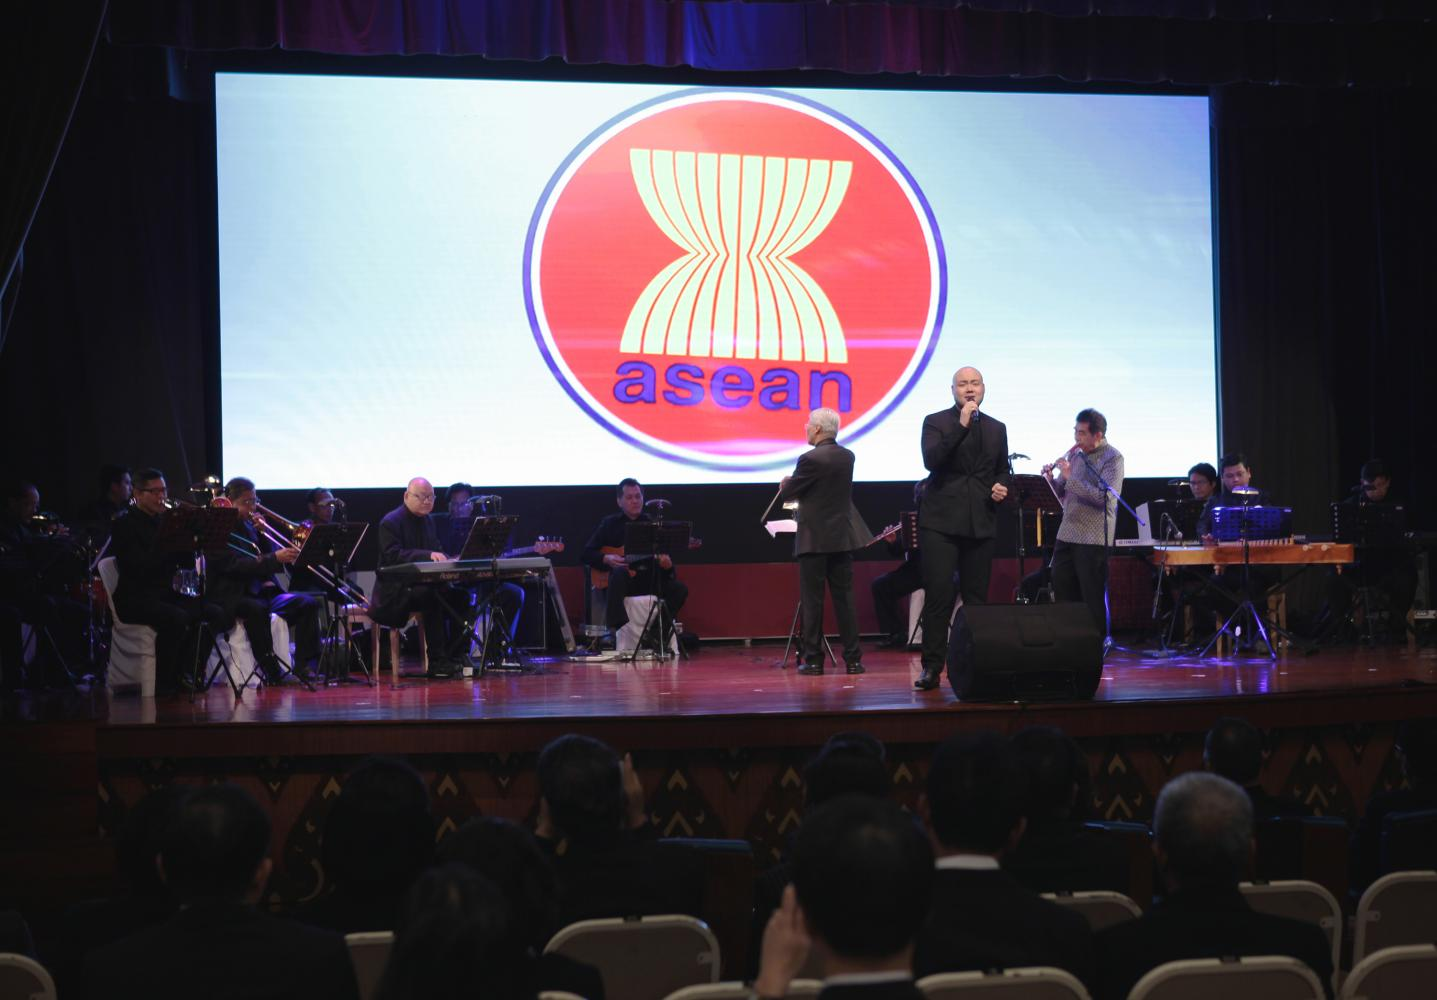 Musicians perform an Asean theme song at the National Theatre in Bangkok to promote Thailand's role as Asean chair. Tawatchai Kemgumnerd